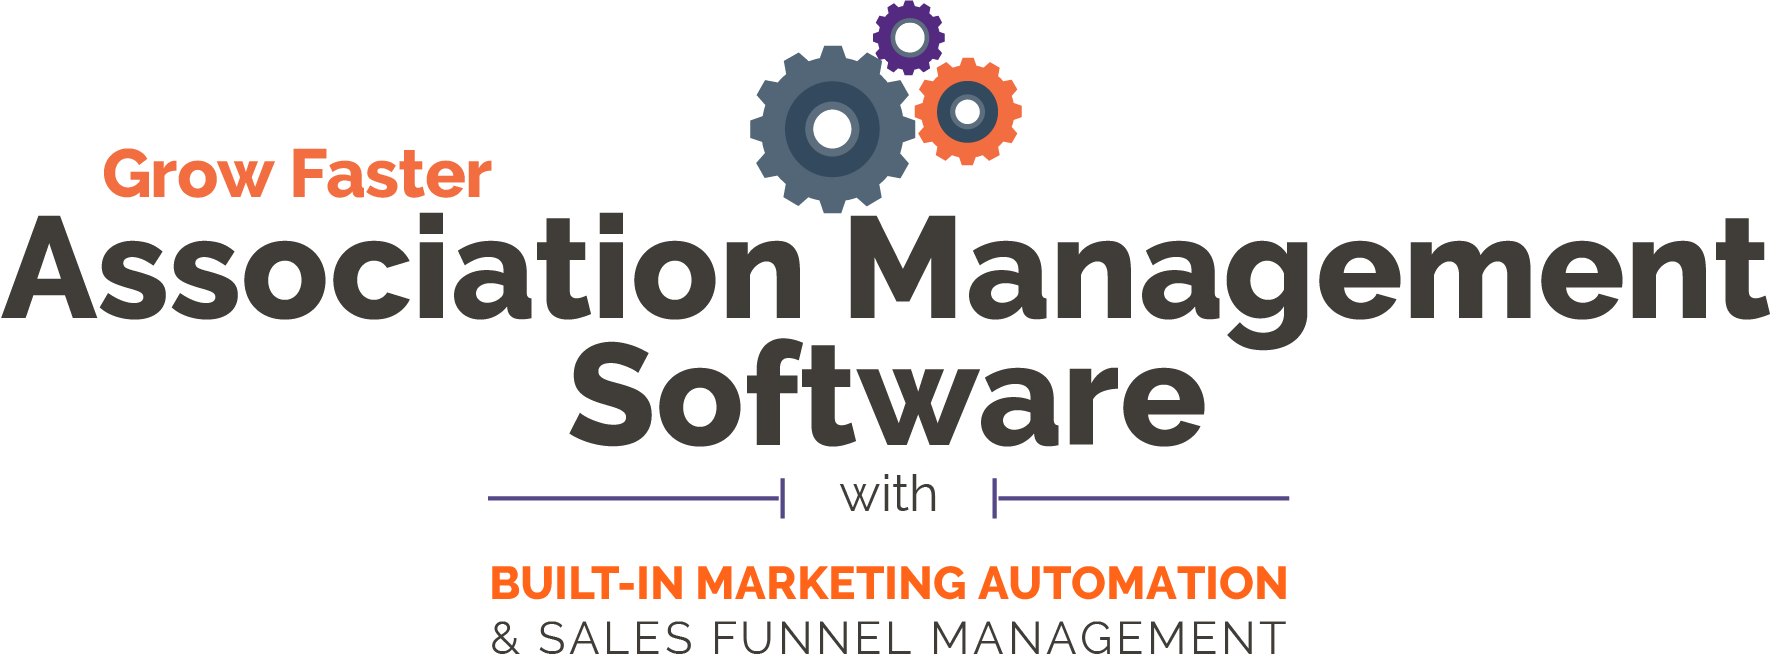 Grow Faster Association Management Software